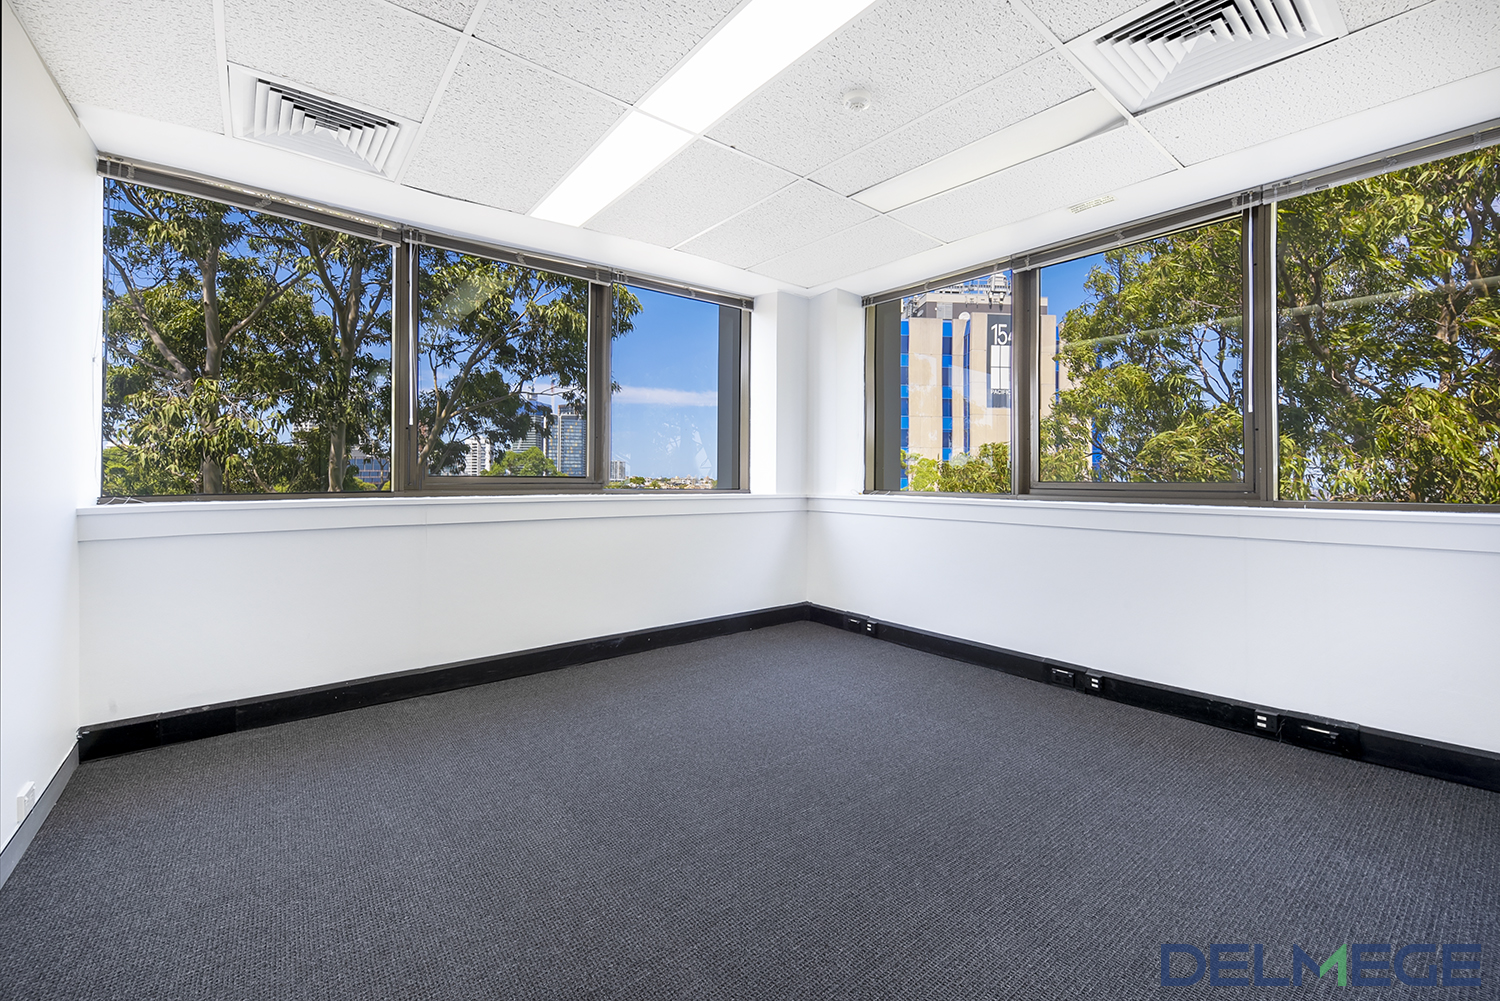 Pacific Highway St Leonards Office for lease in northern beaches